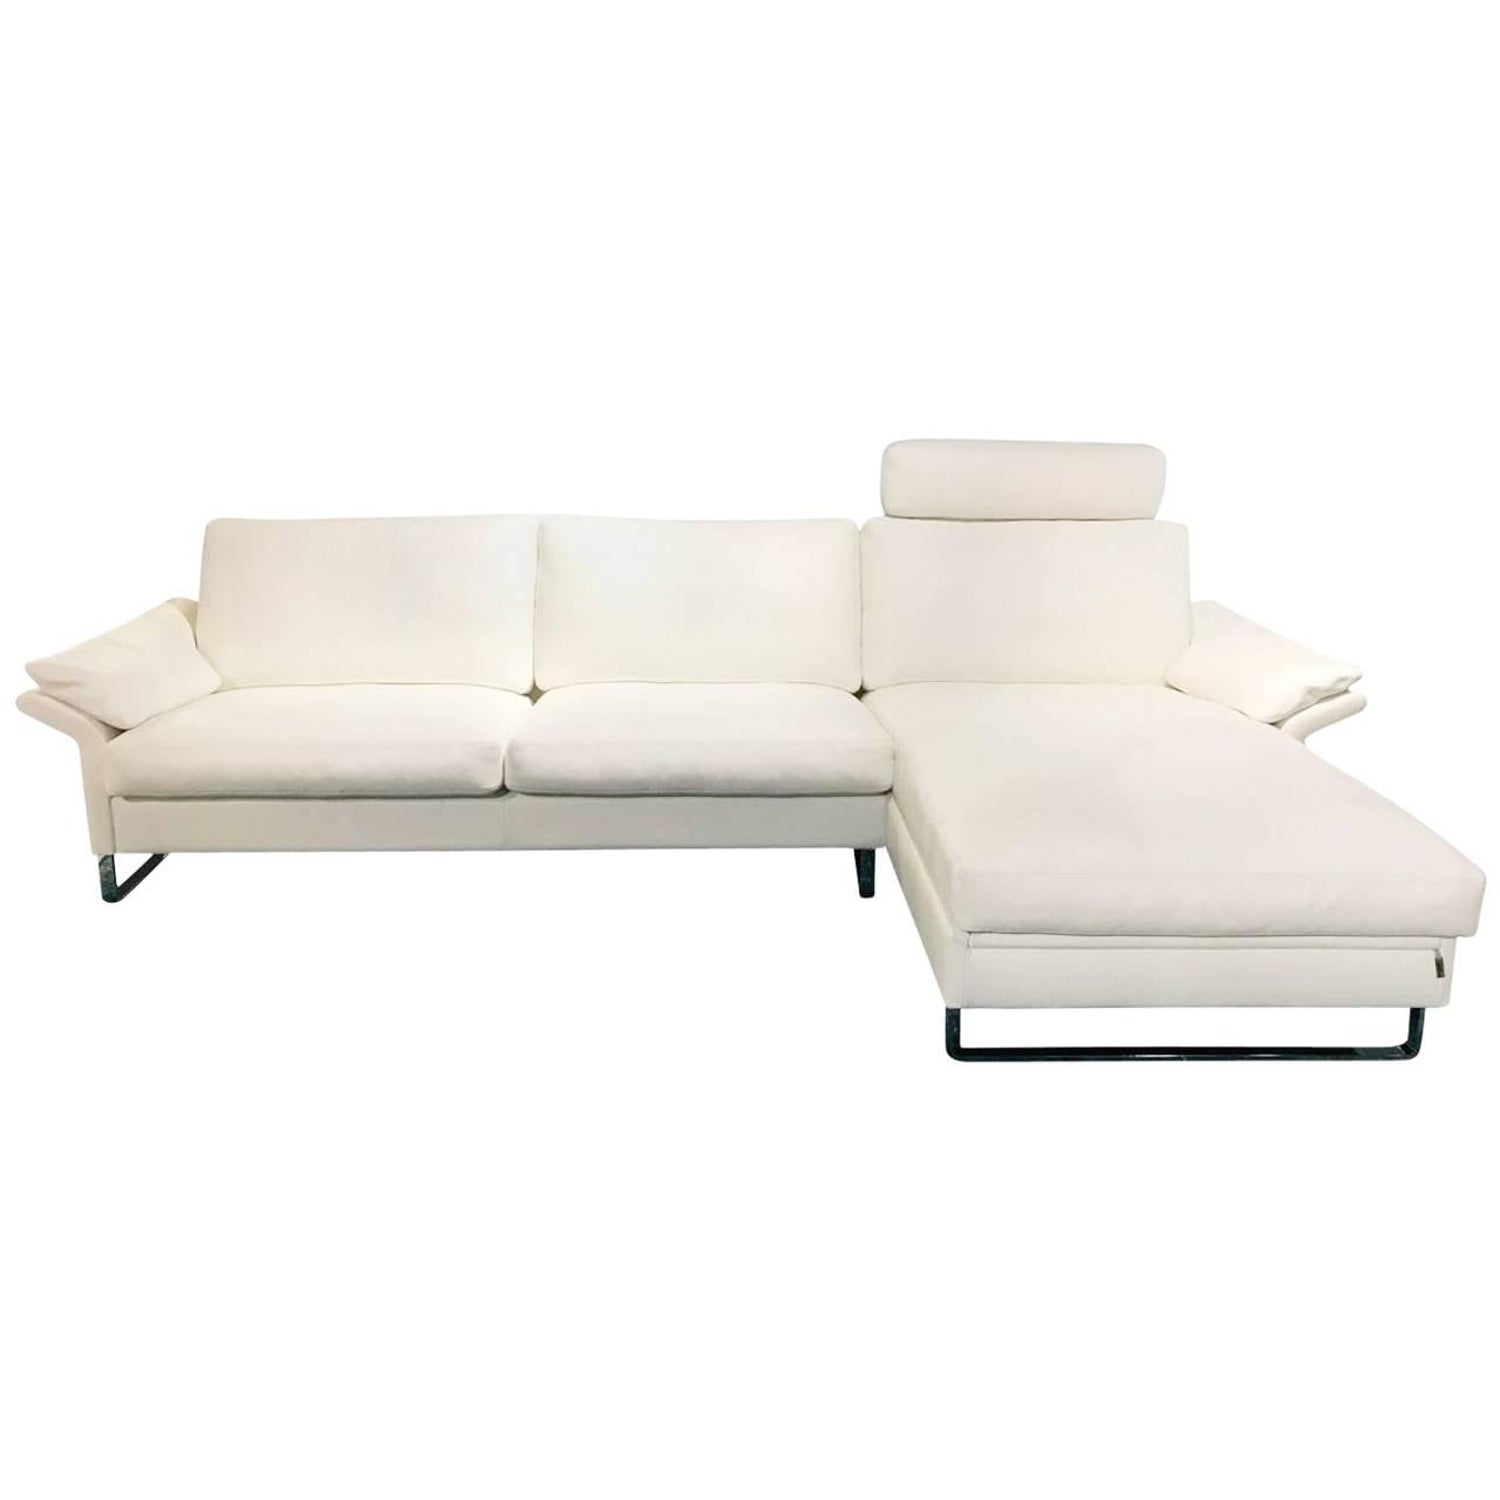 Sofa classics cl 960 by manufacturer erpo in white genuine sofa classics cl 960 by manufacturer erpo in white genuine leather for sale at 1stdibs parisarafo Choice Image